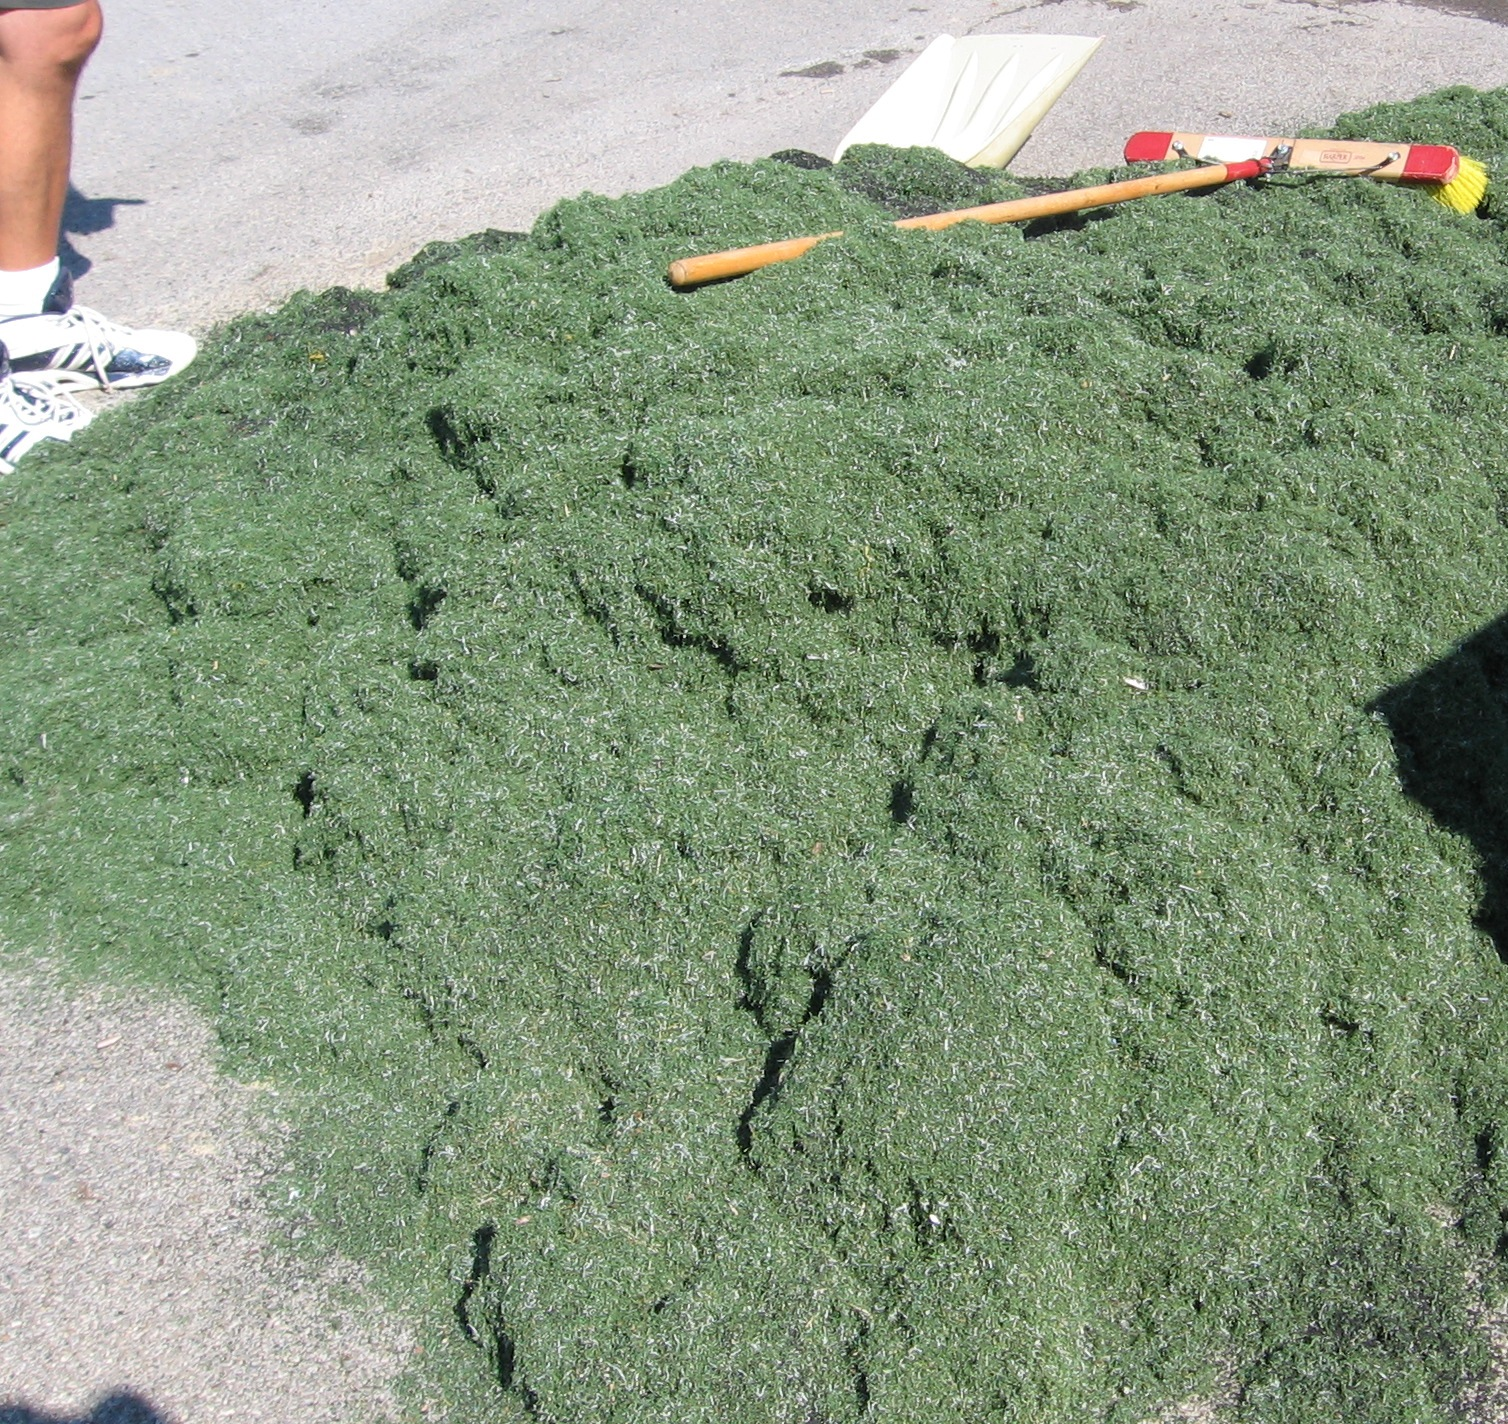 Broken fibers, dirt, fines, and other debris will be removed from your turf.